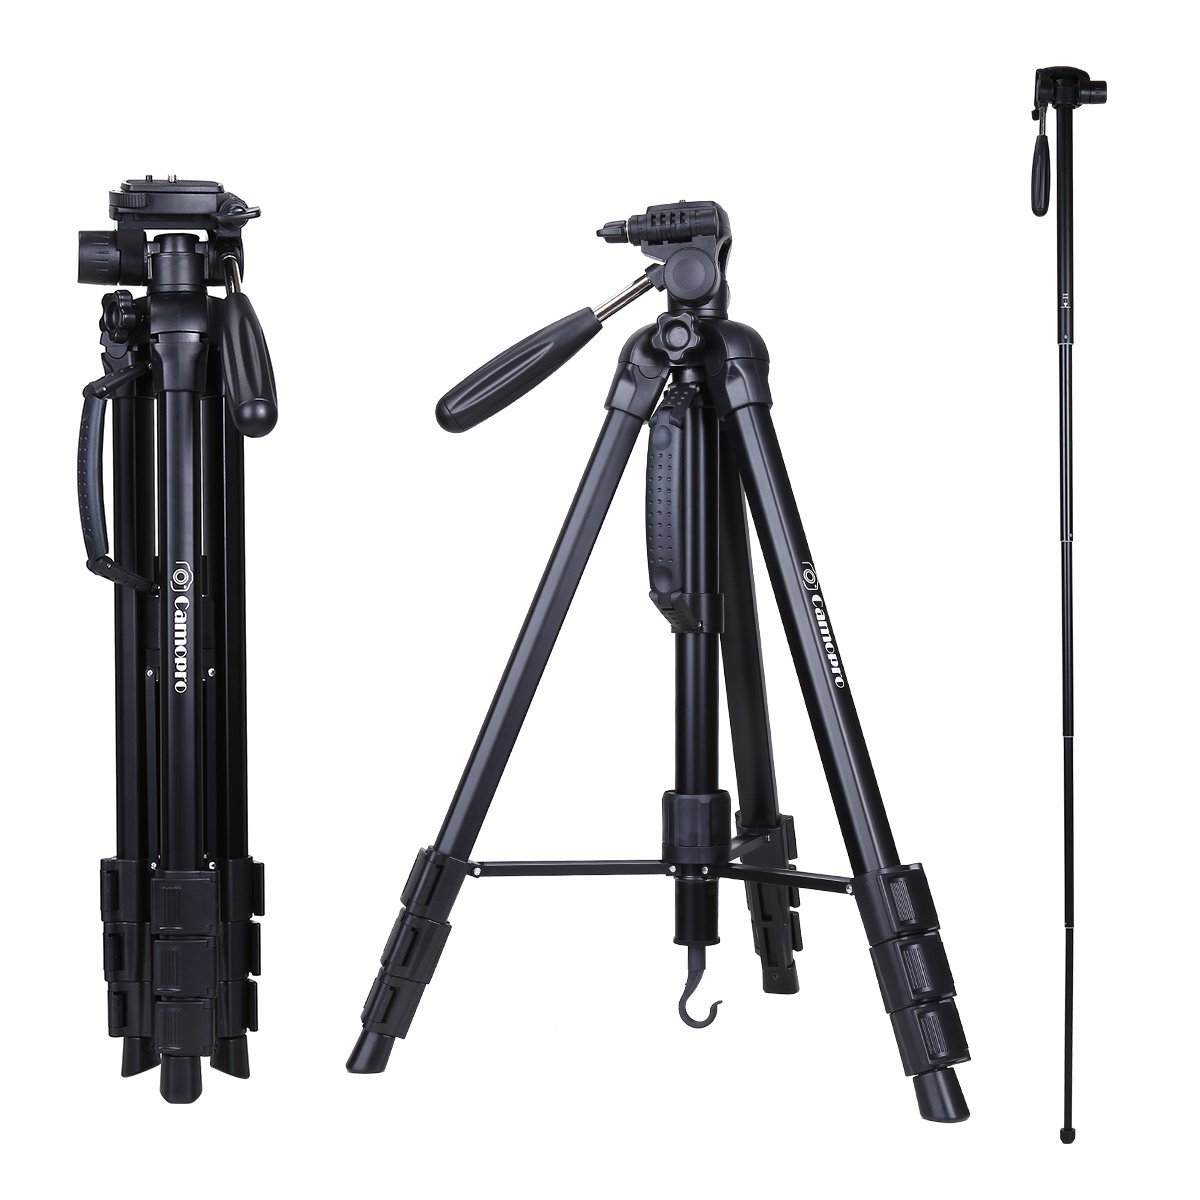 Camopro 70 Inches Professional Digital SLR Camera Aluminum Tripod Monopod for SLR DSLR Canon Nikon Sony DV Video with Carry Bag by Camopro